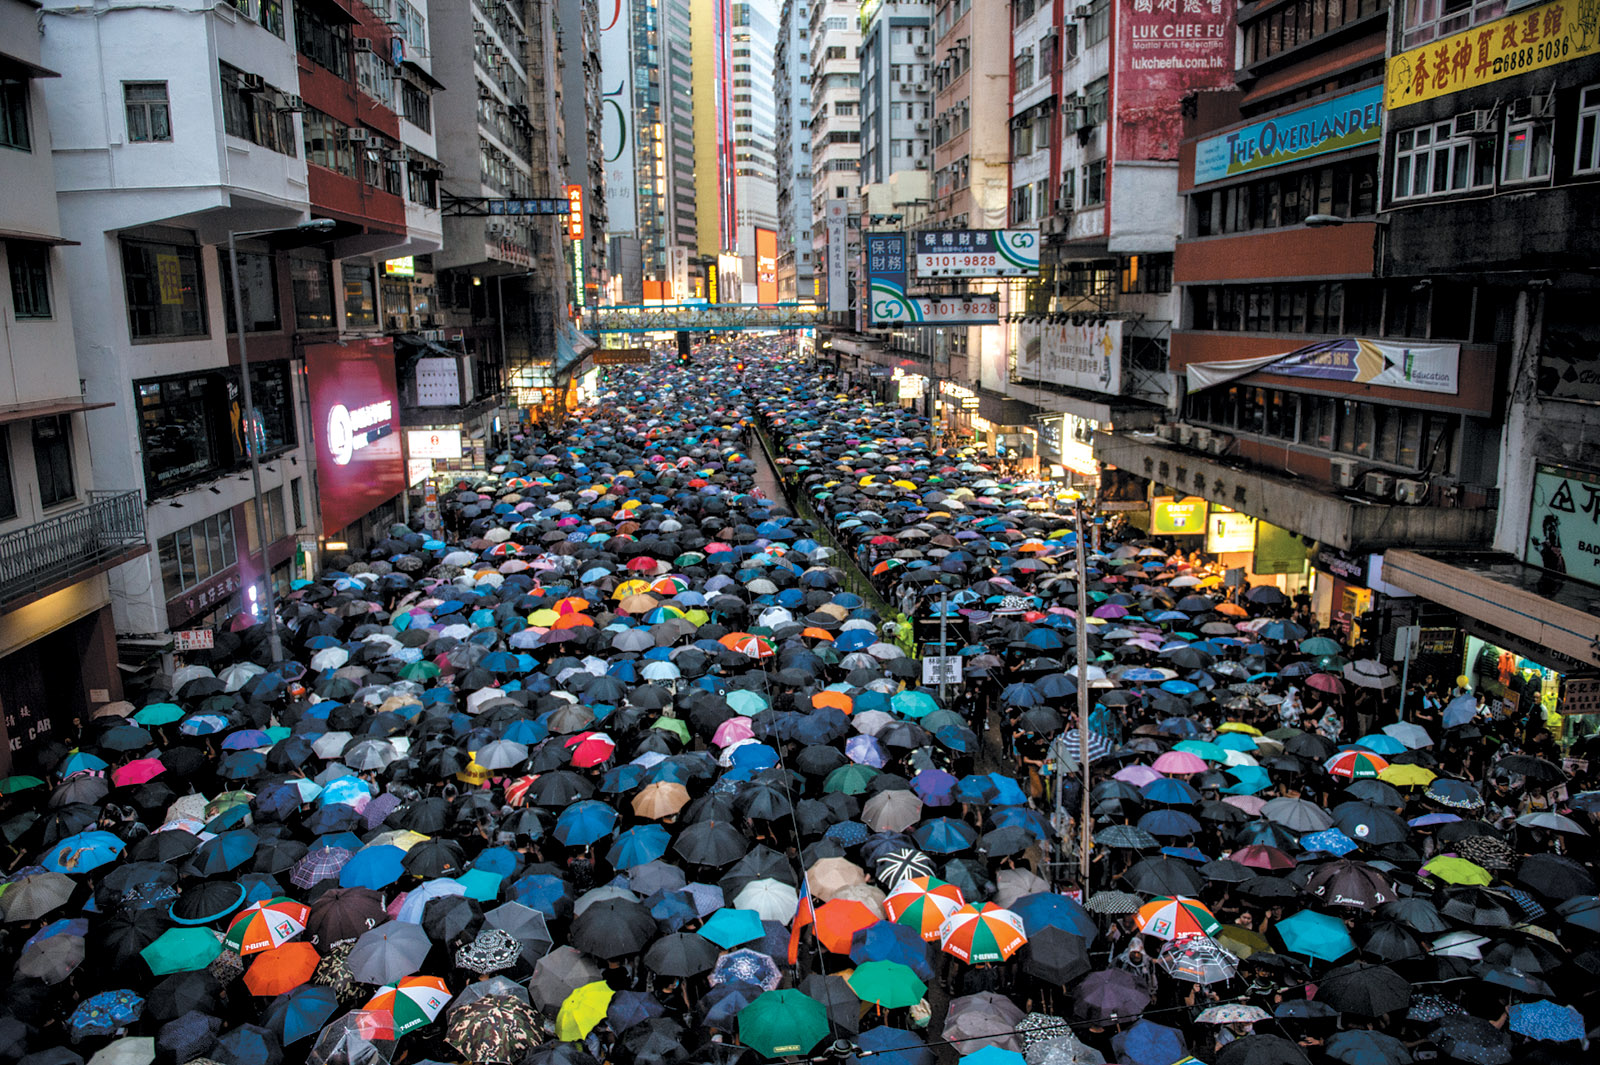 Antigovernment protesters, Hong Kong, August 2019